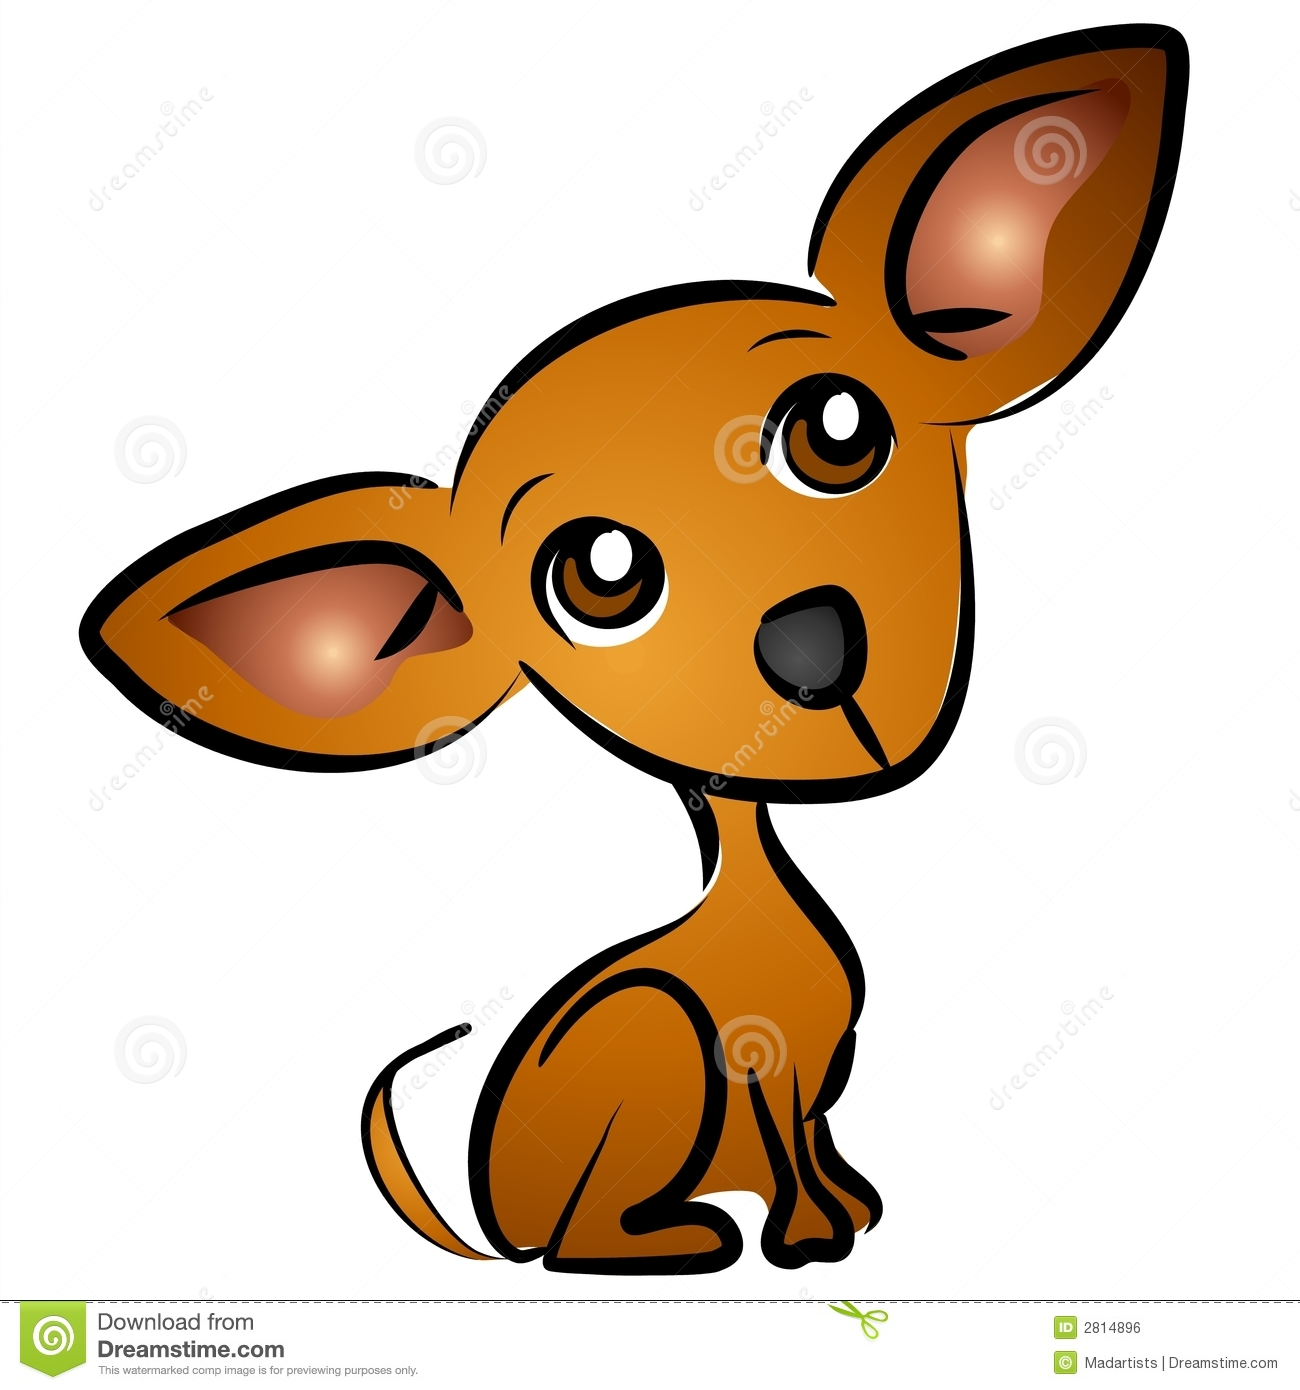 Big and small dog clipart clip art royalty free download Large Small Dog Clipart - Clipart Kid clip art royalty free download